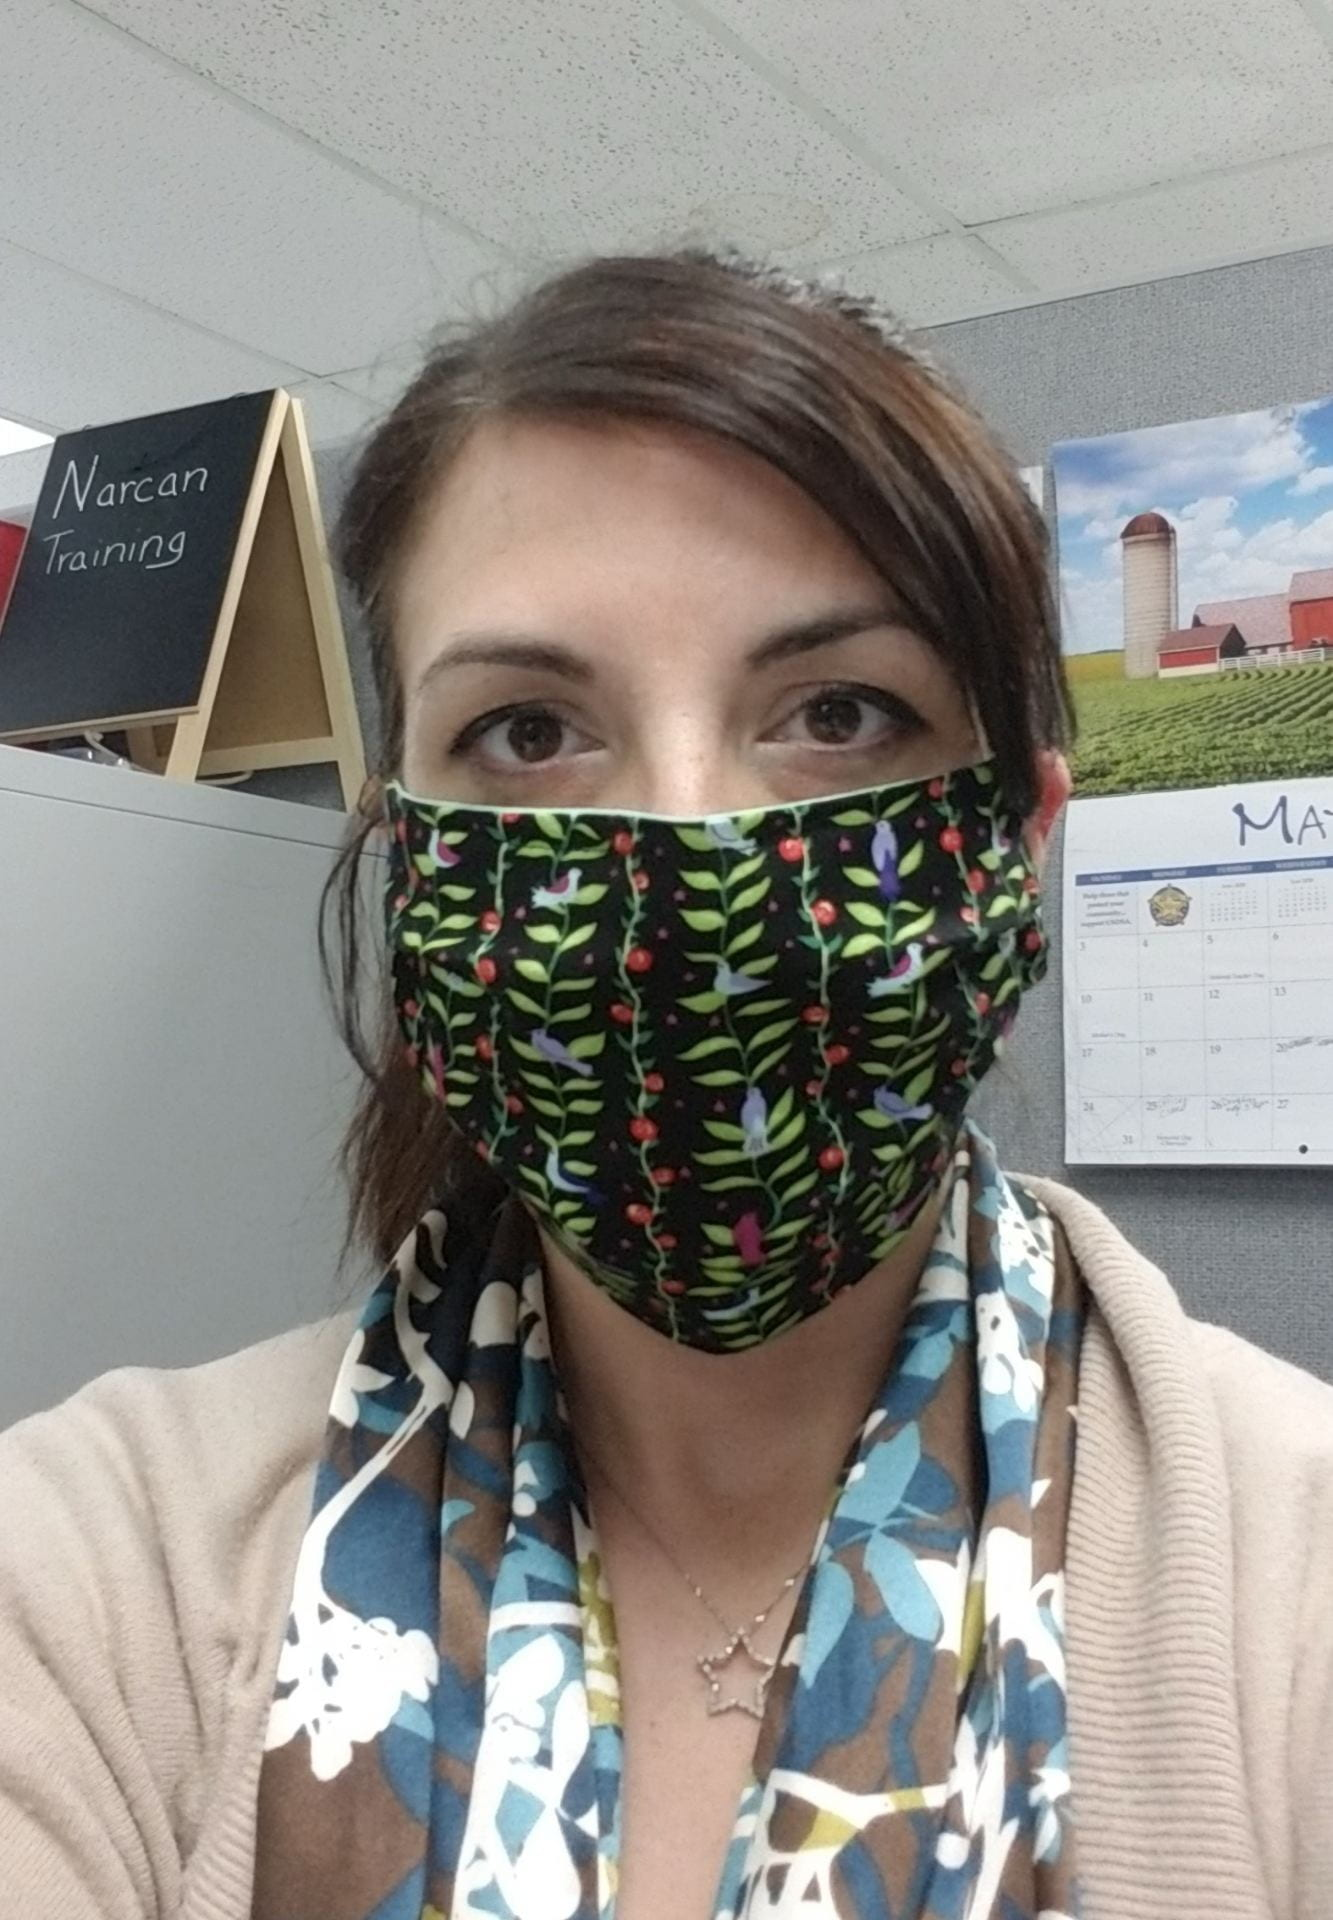 Jennie Cauthern Wears Face Mask in Office